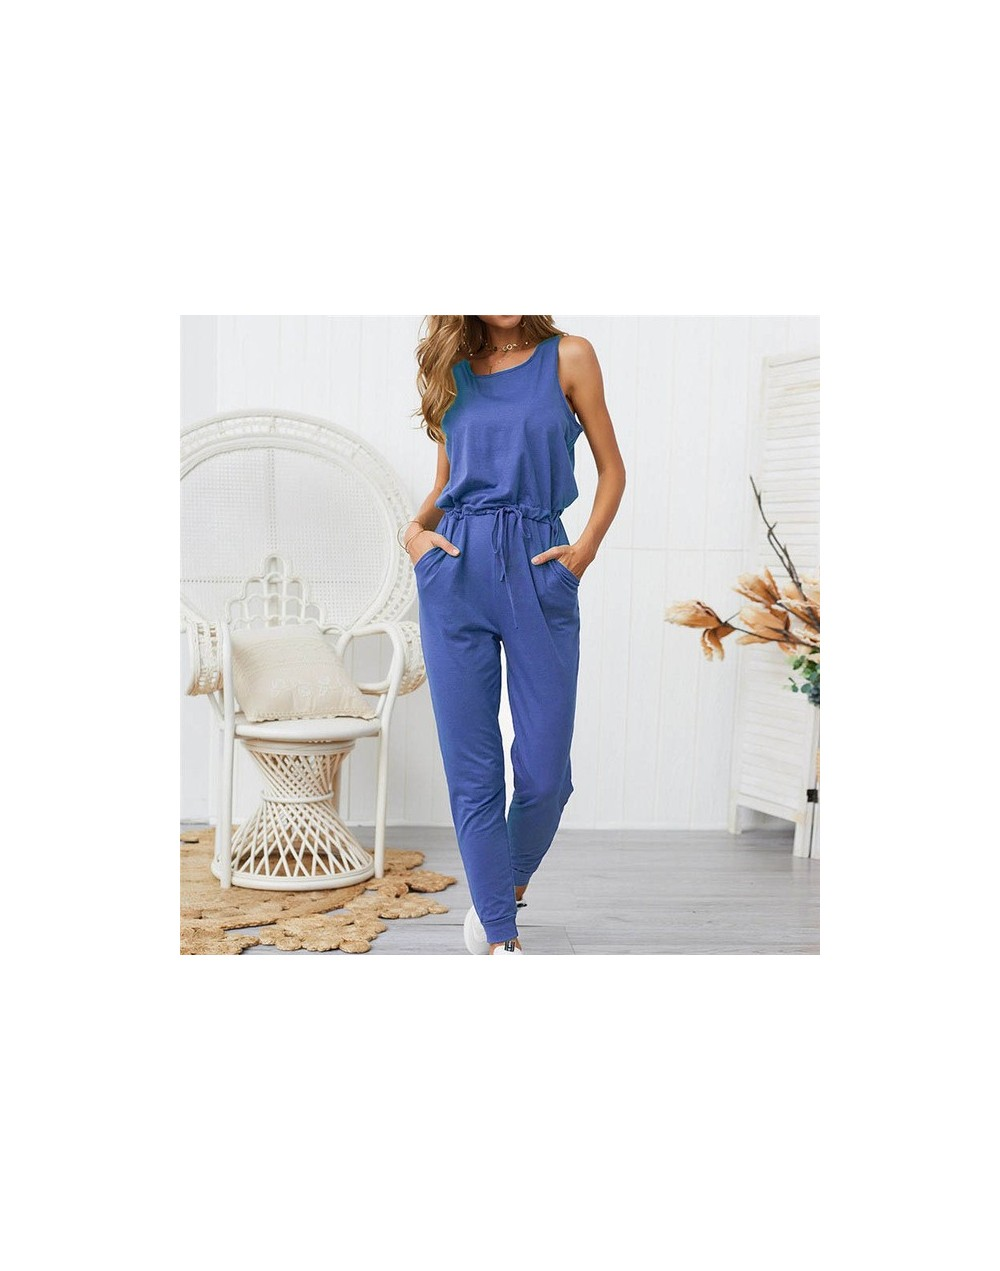 Sexy Simple Jumpsuits Suits Ankle-Length Pants Loose Solid Bodysuits 2019 Sleeveless Straps Cozy Breathable Jumpsuit - blue ...